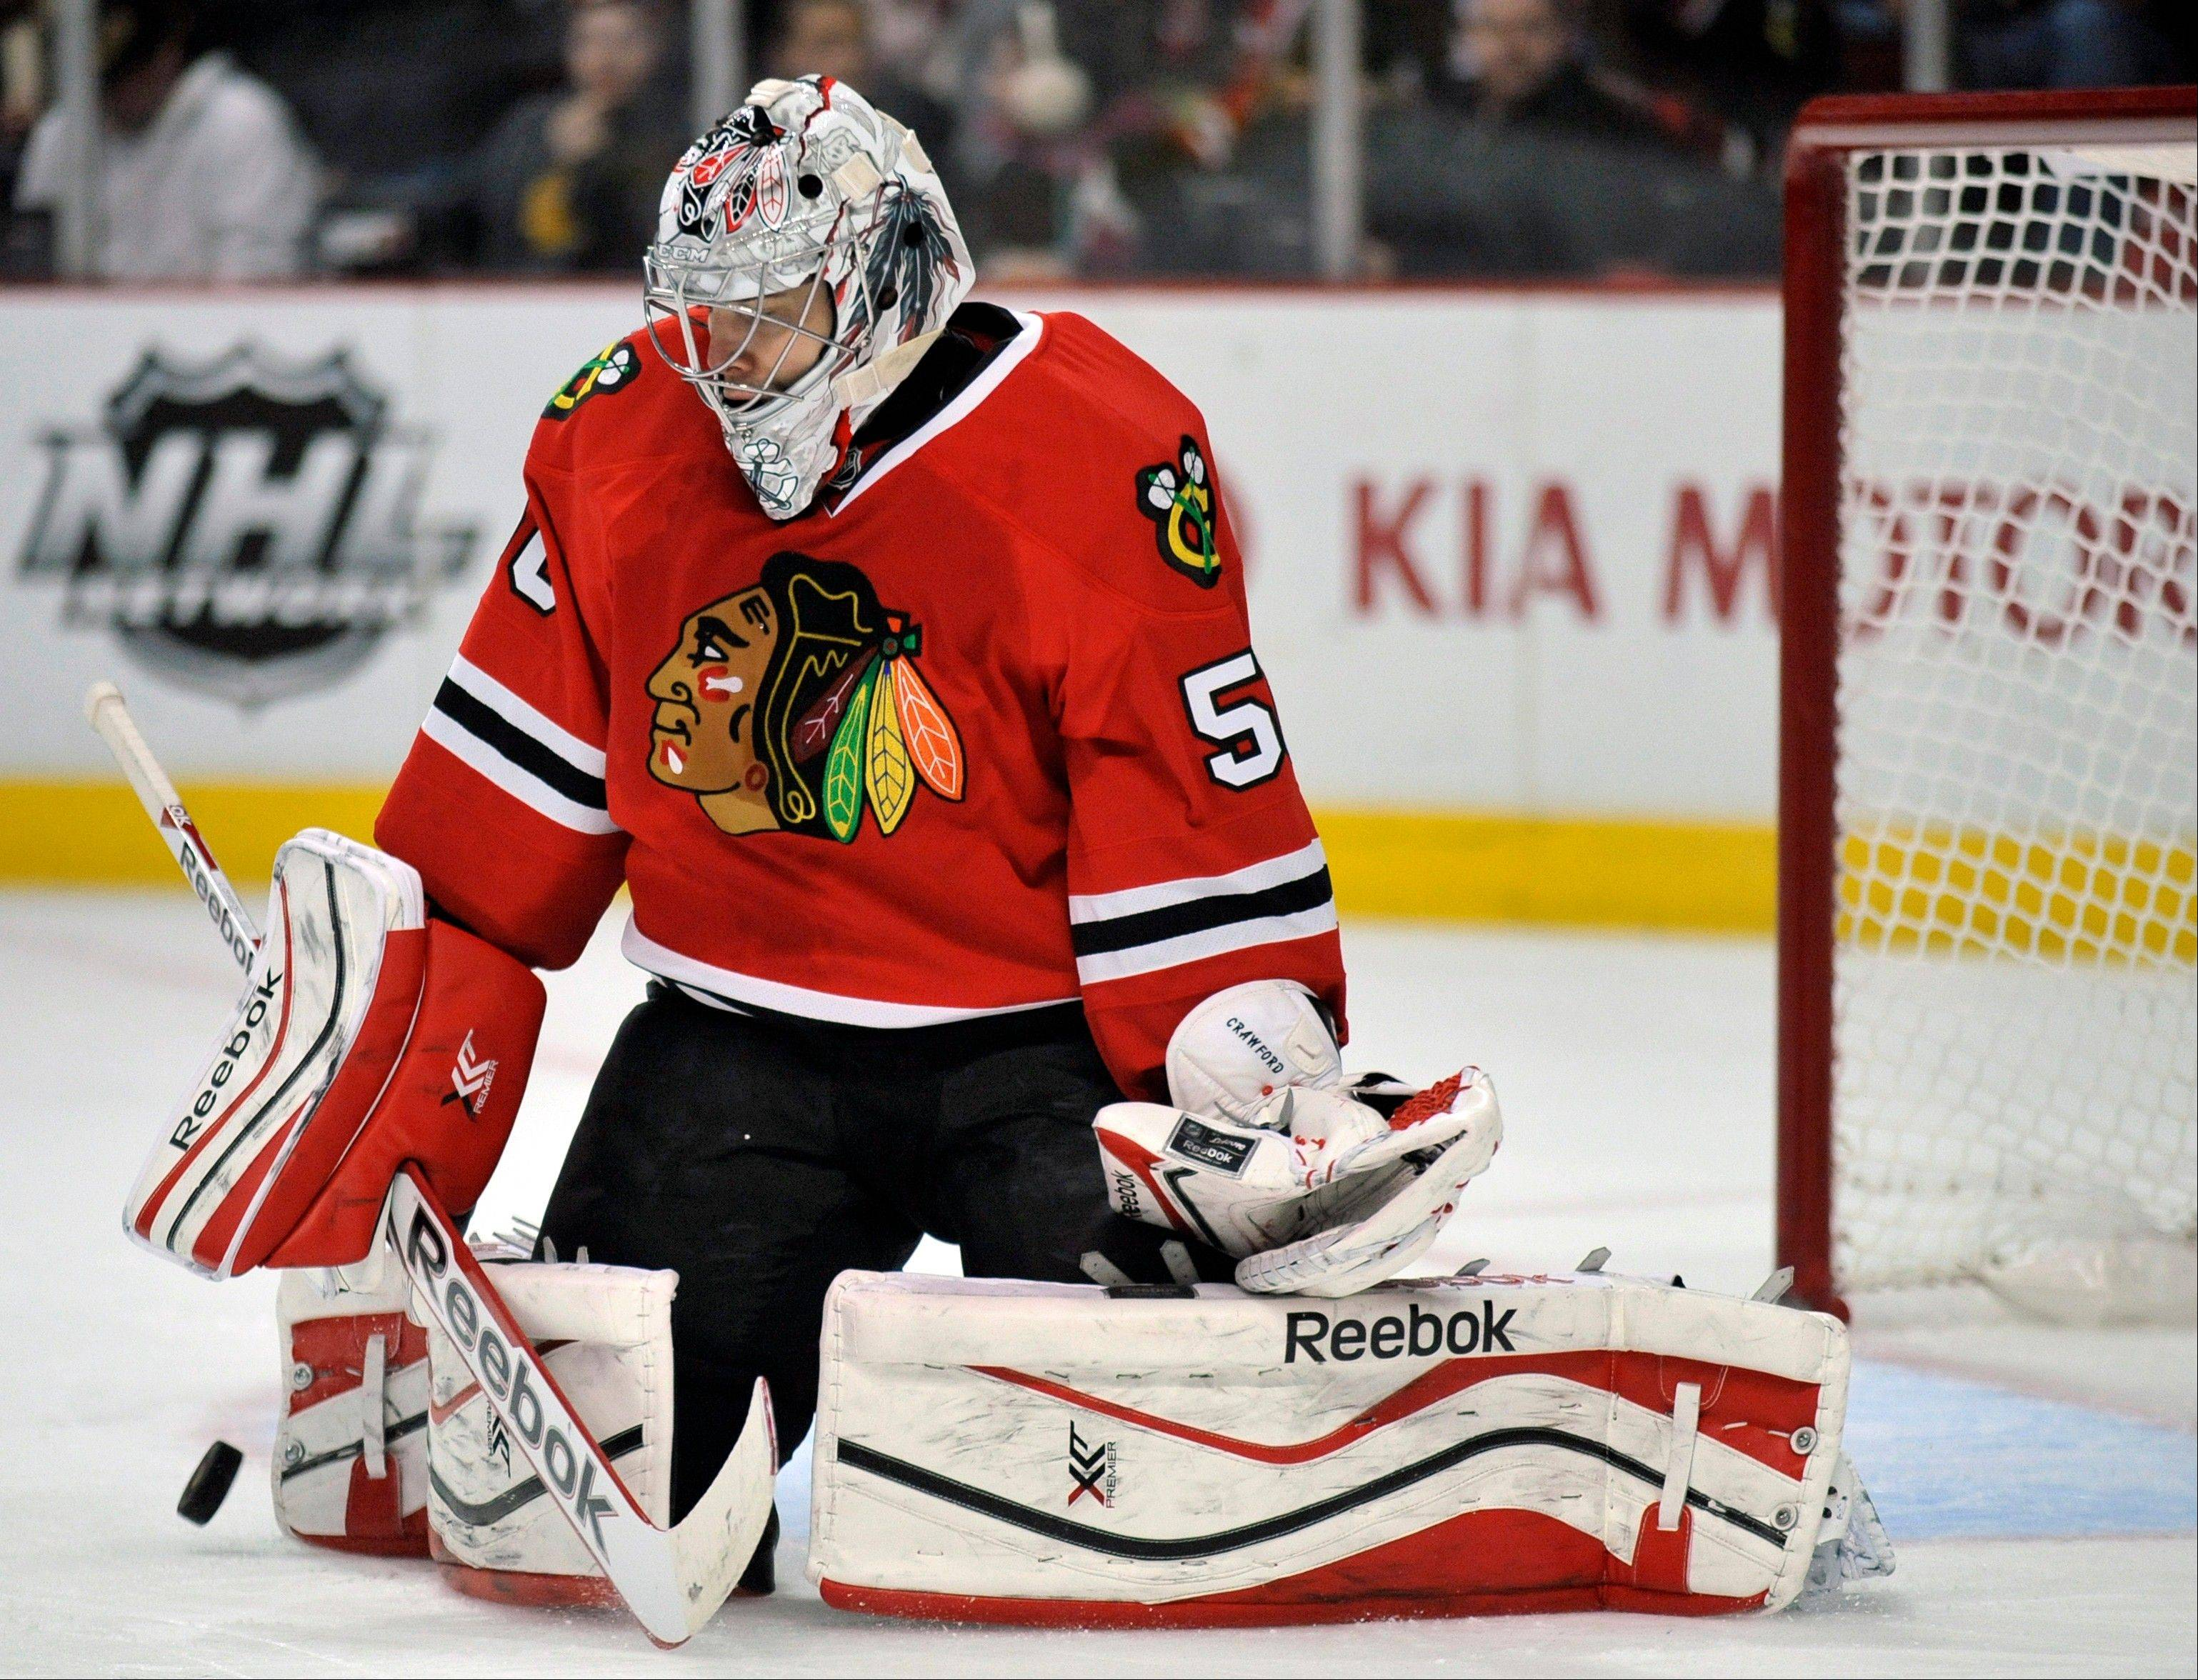 Chicago Blackhawks goalie Corey Crawford makes a save during the first period of an NHL hockey game against the San Jose Sharks in Chicago, Sunday, Jan. 5, 2014.